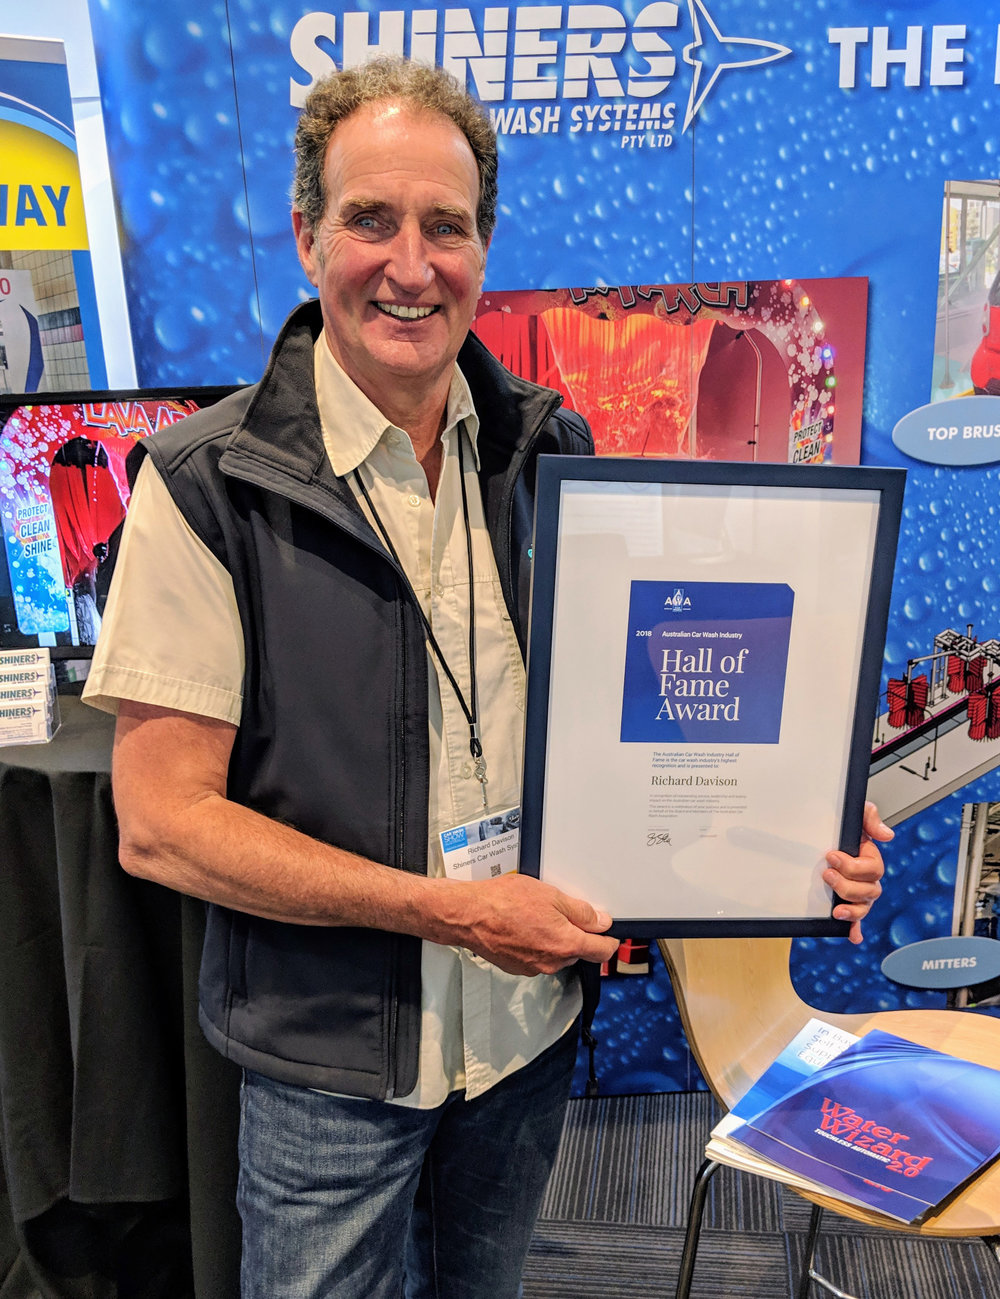 "Richard Davison of Shiners Car Wash Systems received the well deserved Australian Car Wash Industries ""Hall of Fame"" award.  Washlink Systems  is proud to be a member of Shiners Car Wash Systems team."